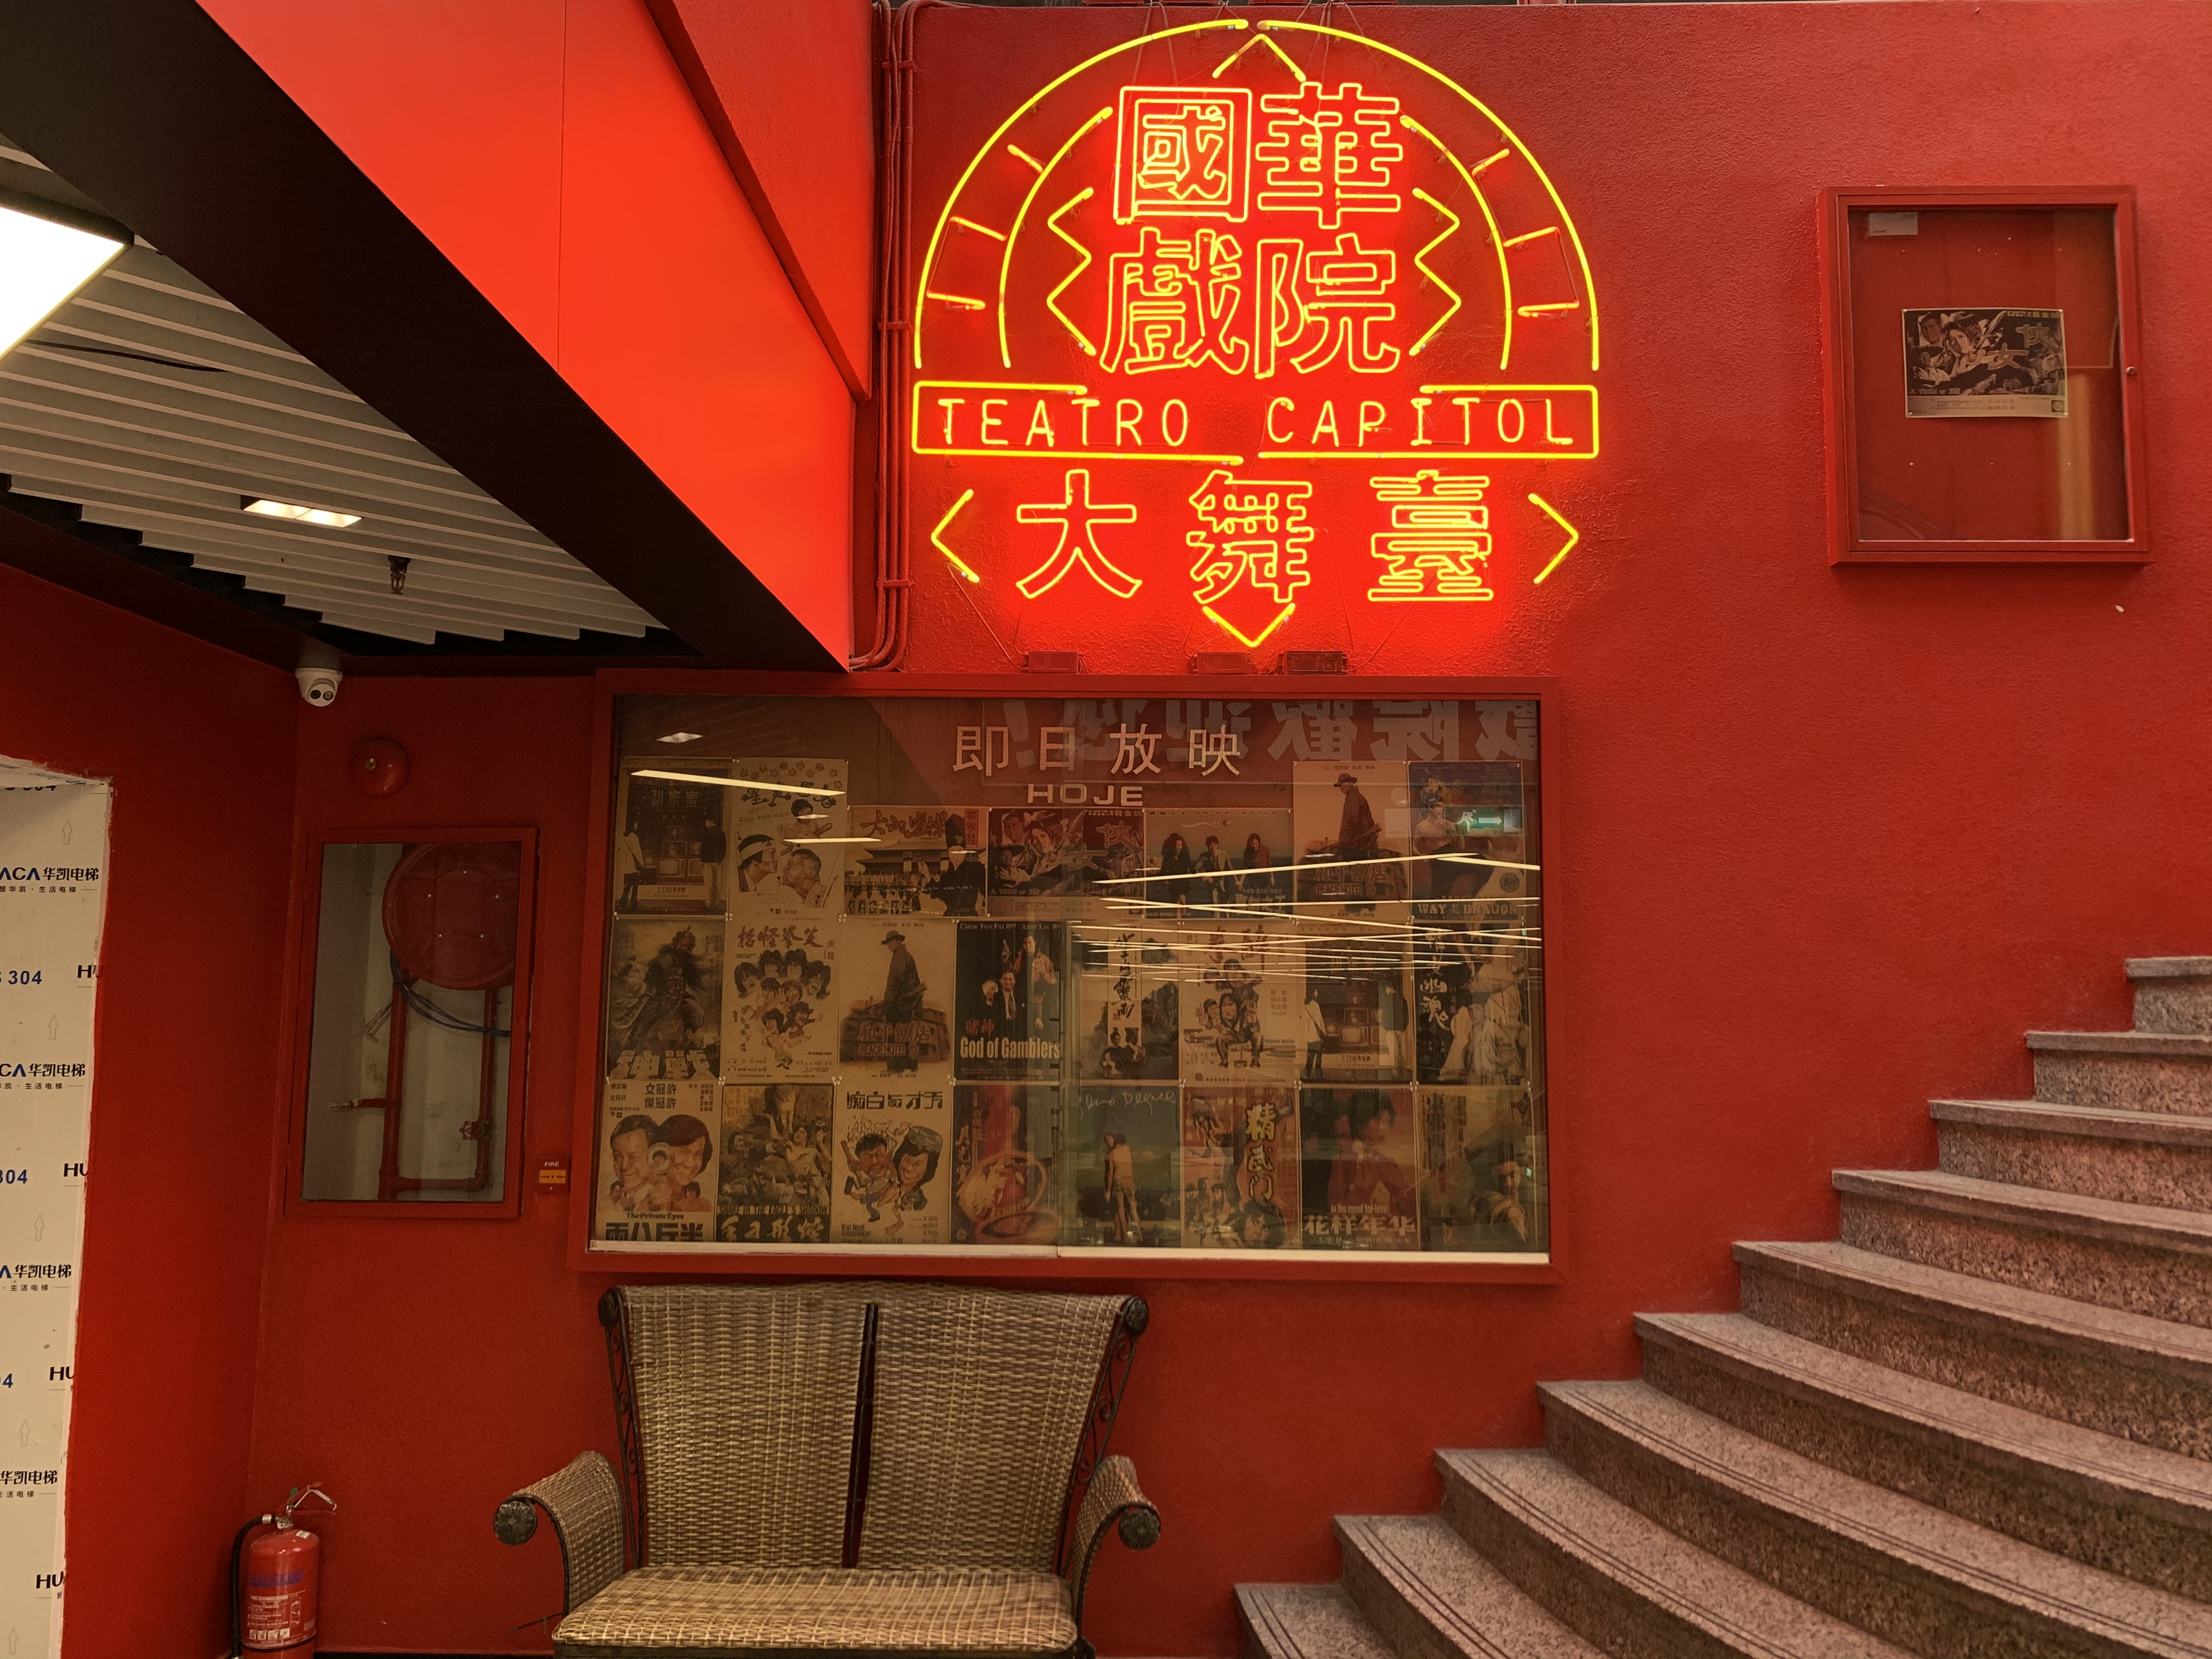 Teatro Capitol Cinema Hall Interior Neon Sign Macau Lifestyle